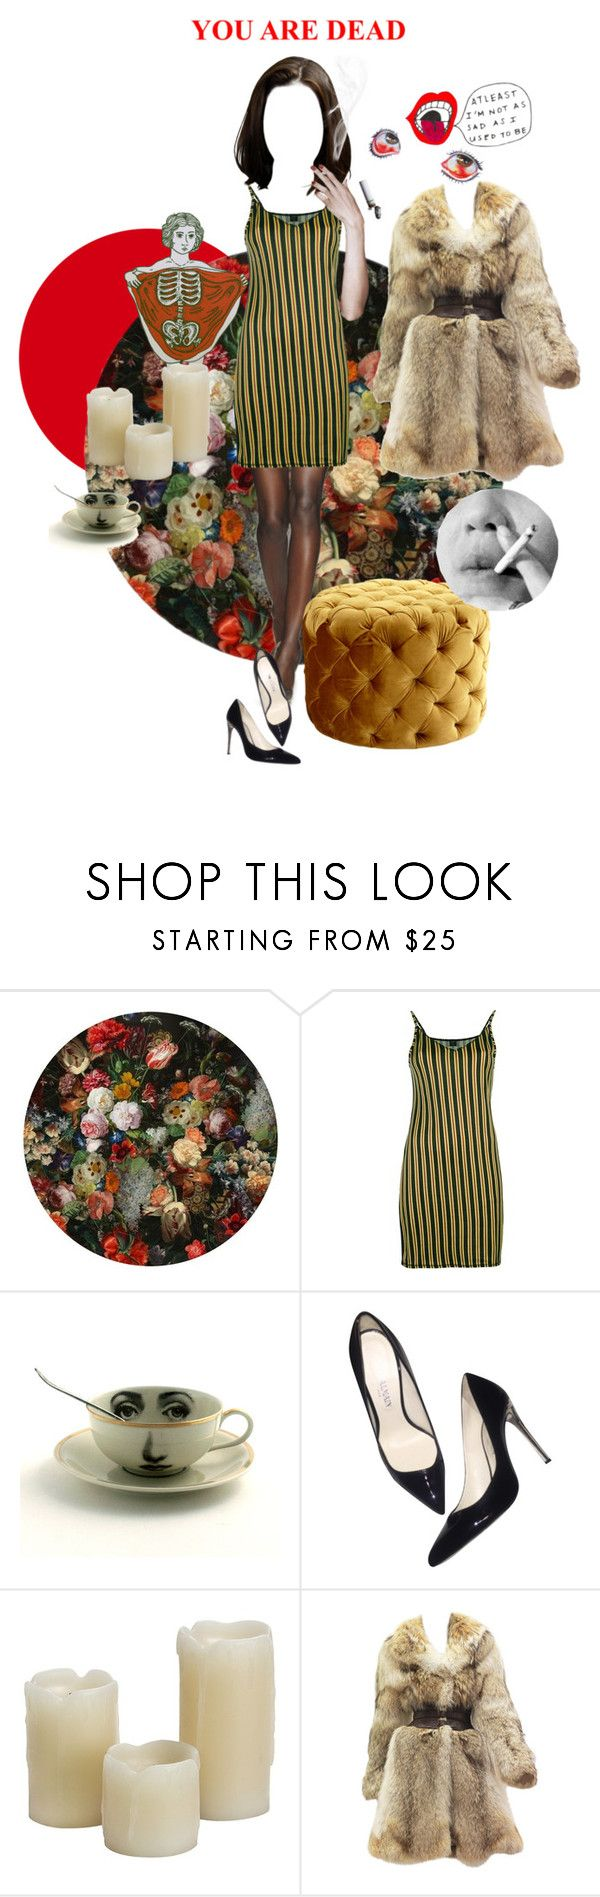 """""""a cheap and drunken purgatory"""" by midnightcrew ❤ liked on Polyvore featuring Moooi, Jean-Paul Gaultier, Balmain, Inglow, Alexander McQueen and Cyan Design"""